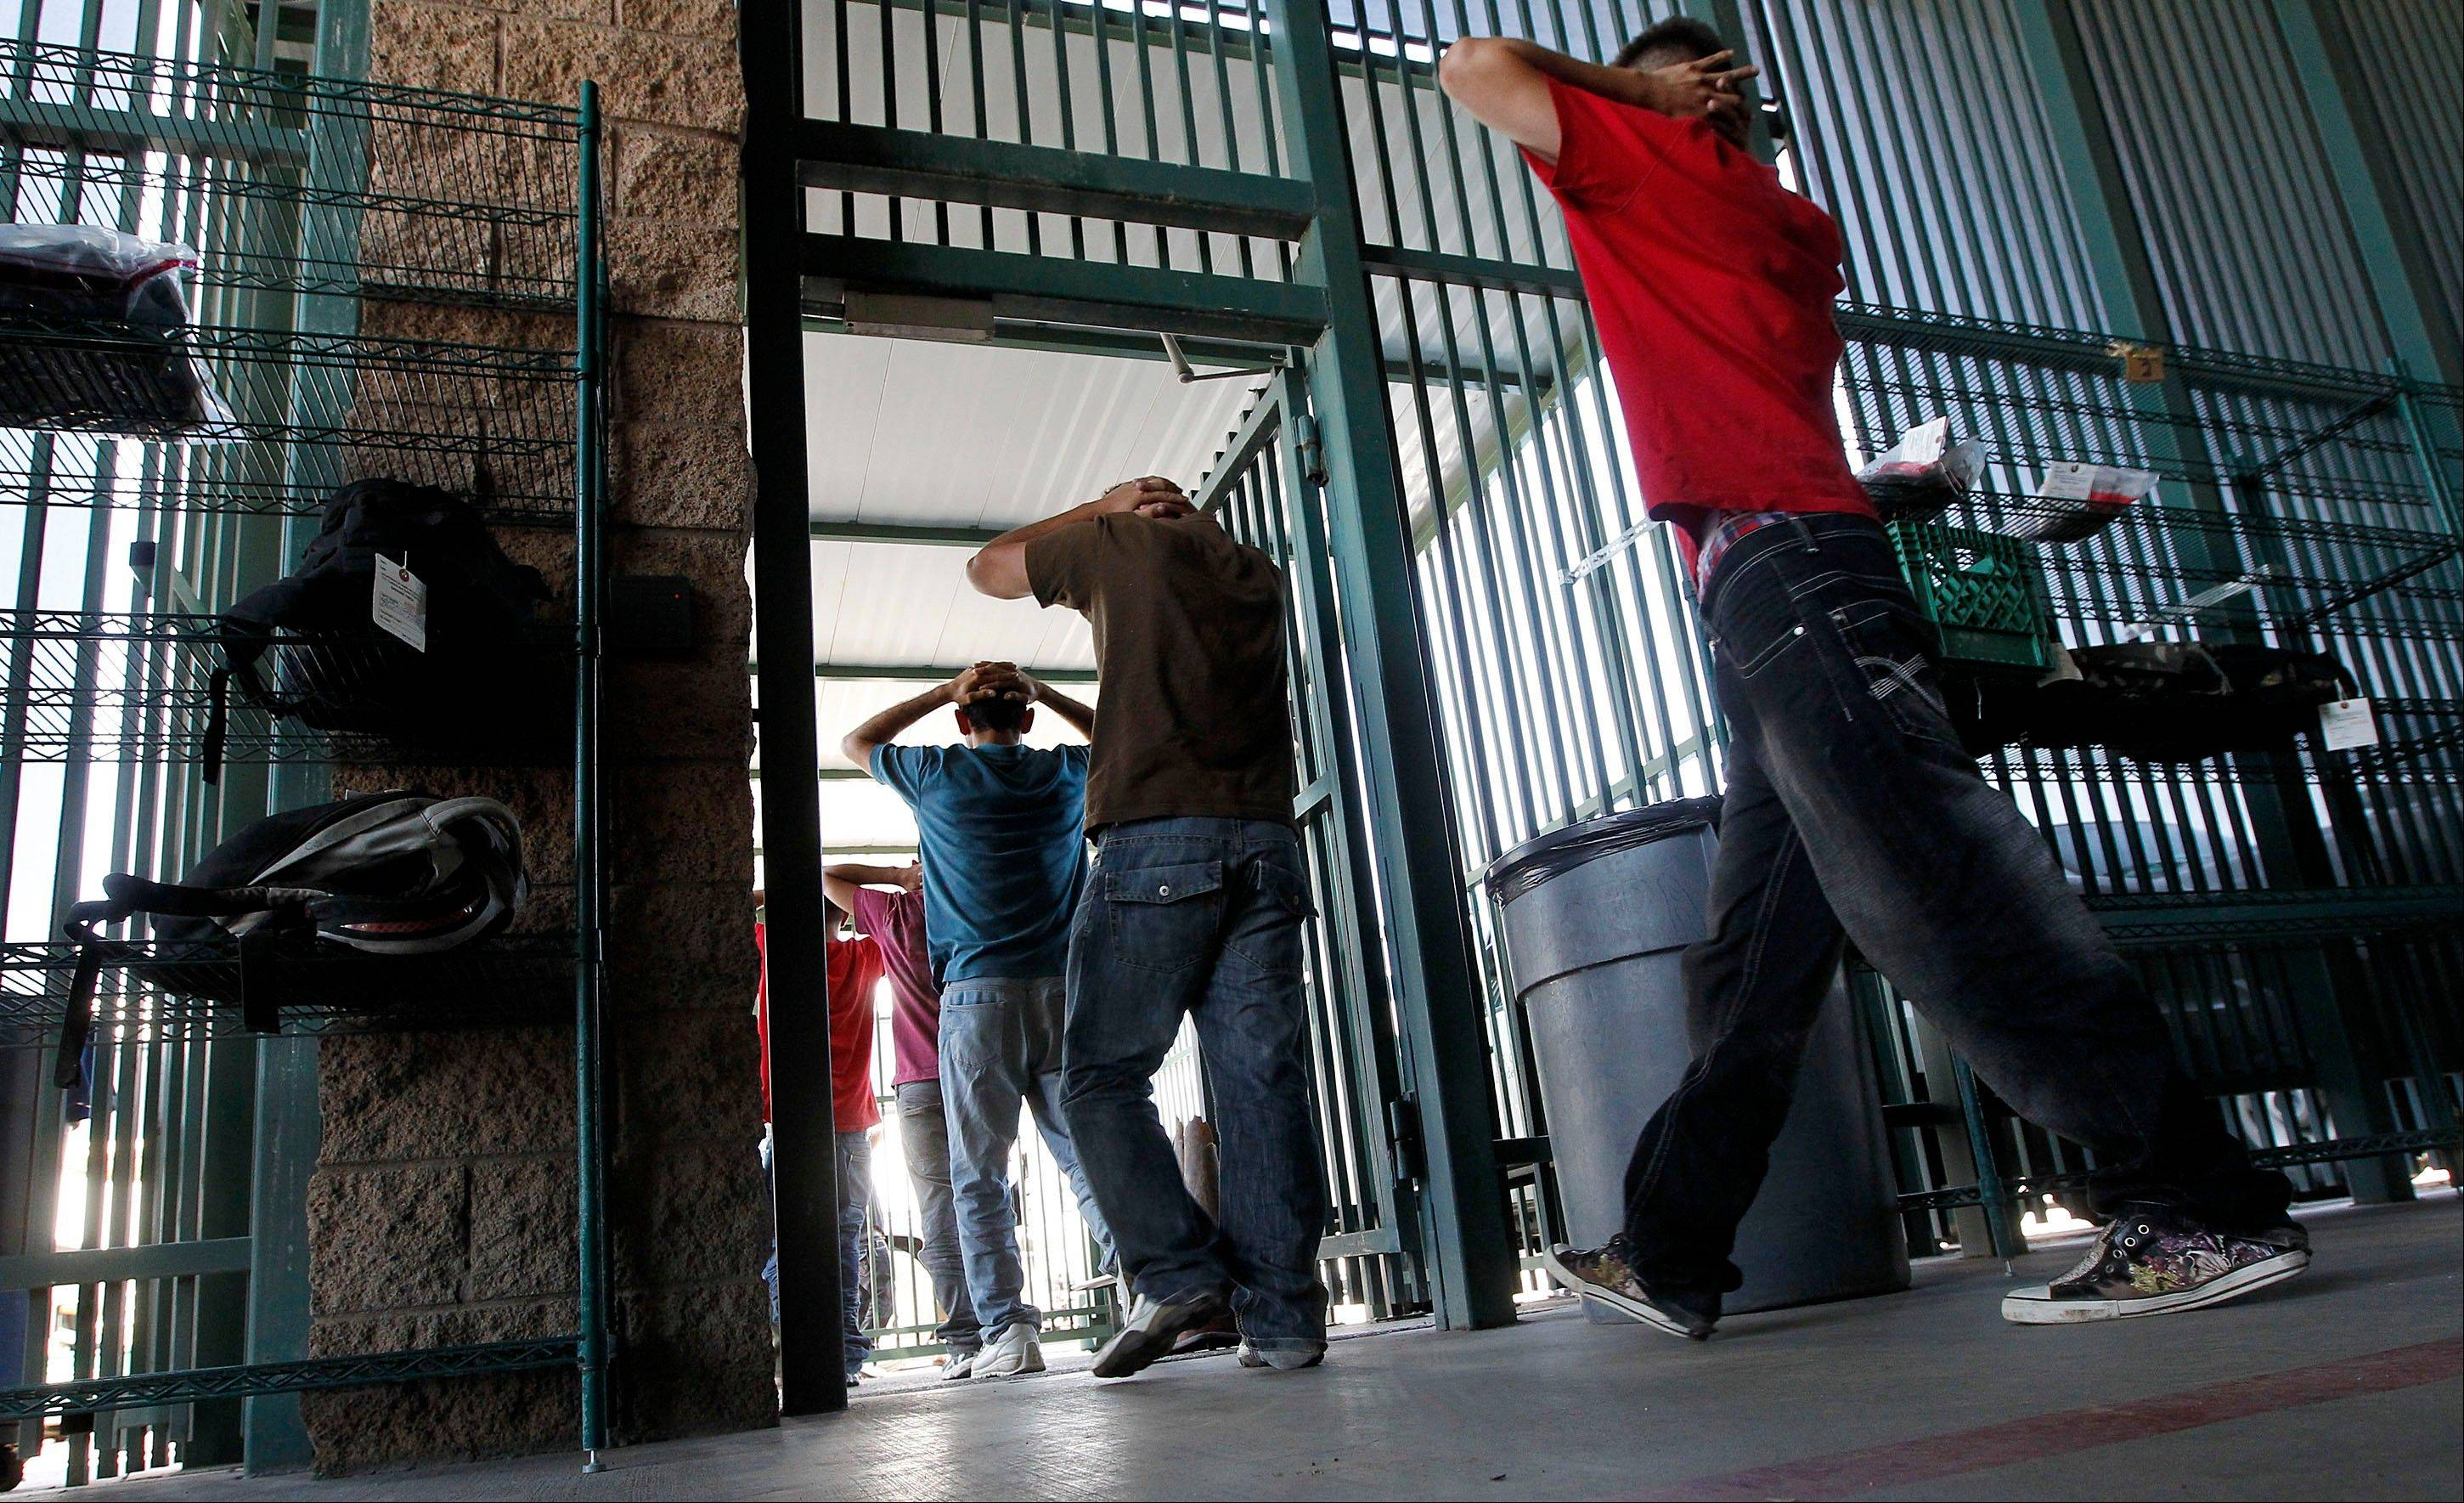 Illegal immigrants prepare to enter a bus after being processed at Tucson Sector U.S. Border Patrol Headquarters Thursday in Tucson, Ariz. New strategies being implemented by the U.S. government, including the halting of one-way flights back to the interior cities in Mexico, are in place to streamline processing and expedite a return to Mexico.